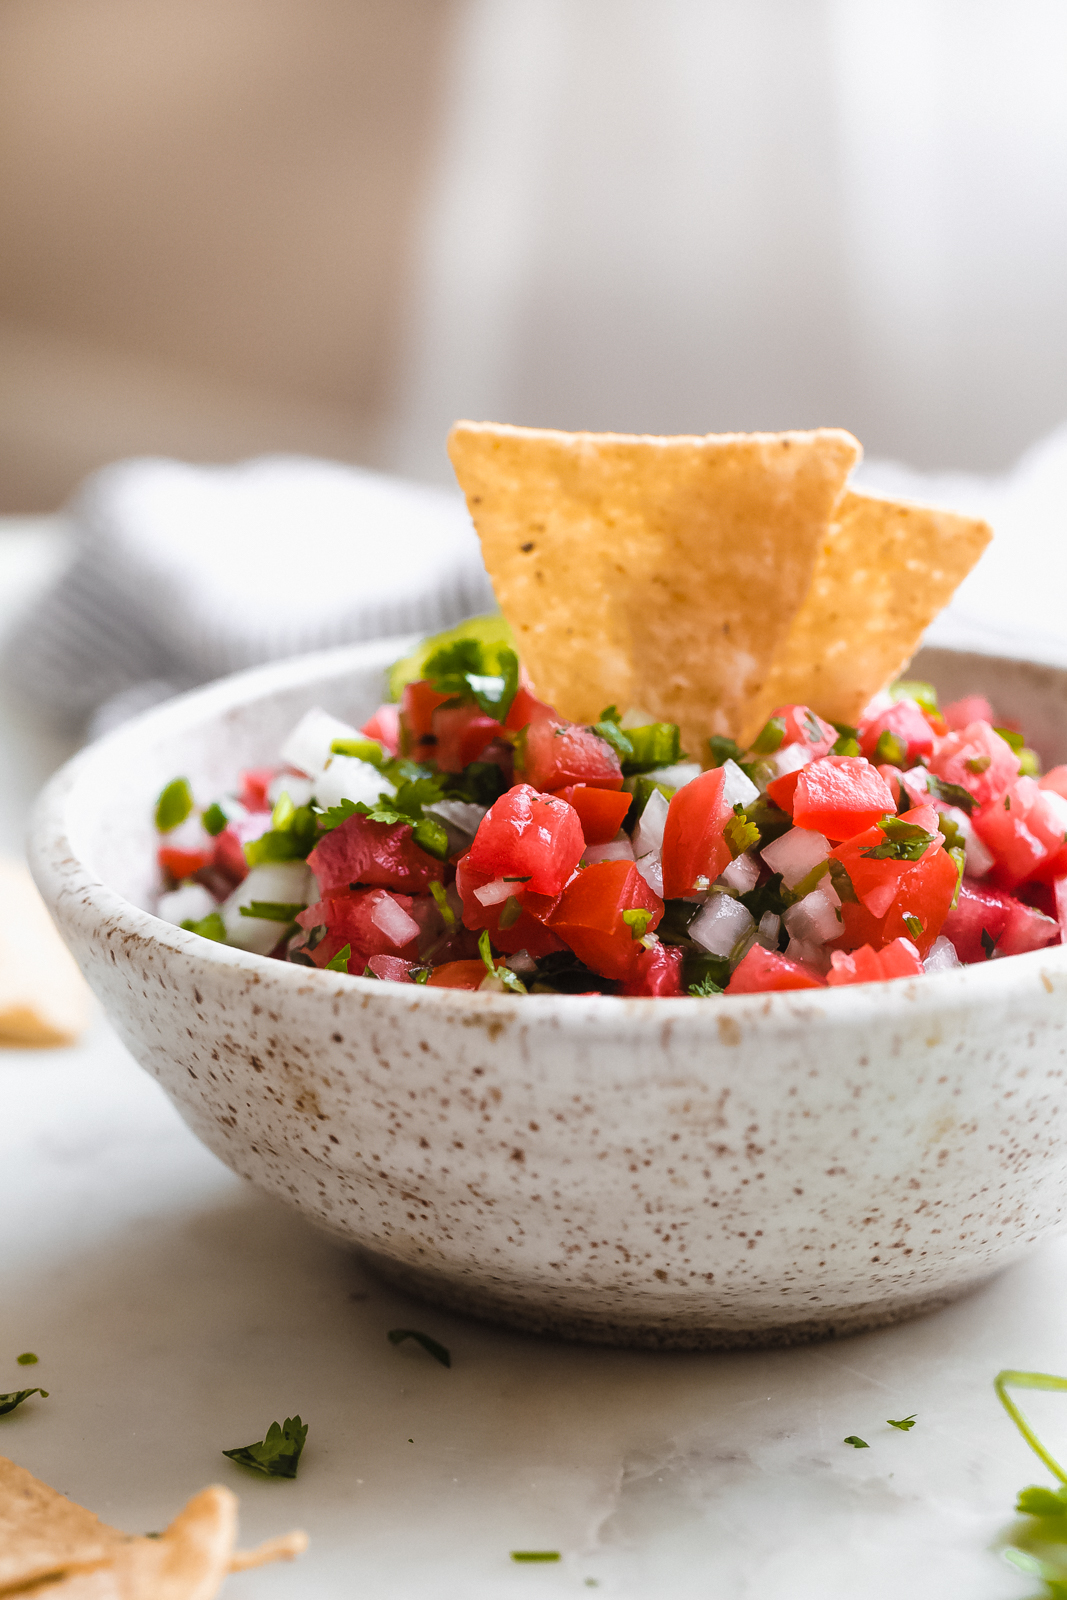 side view of speckled bowl of prepared pico with tortilla chips standing